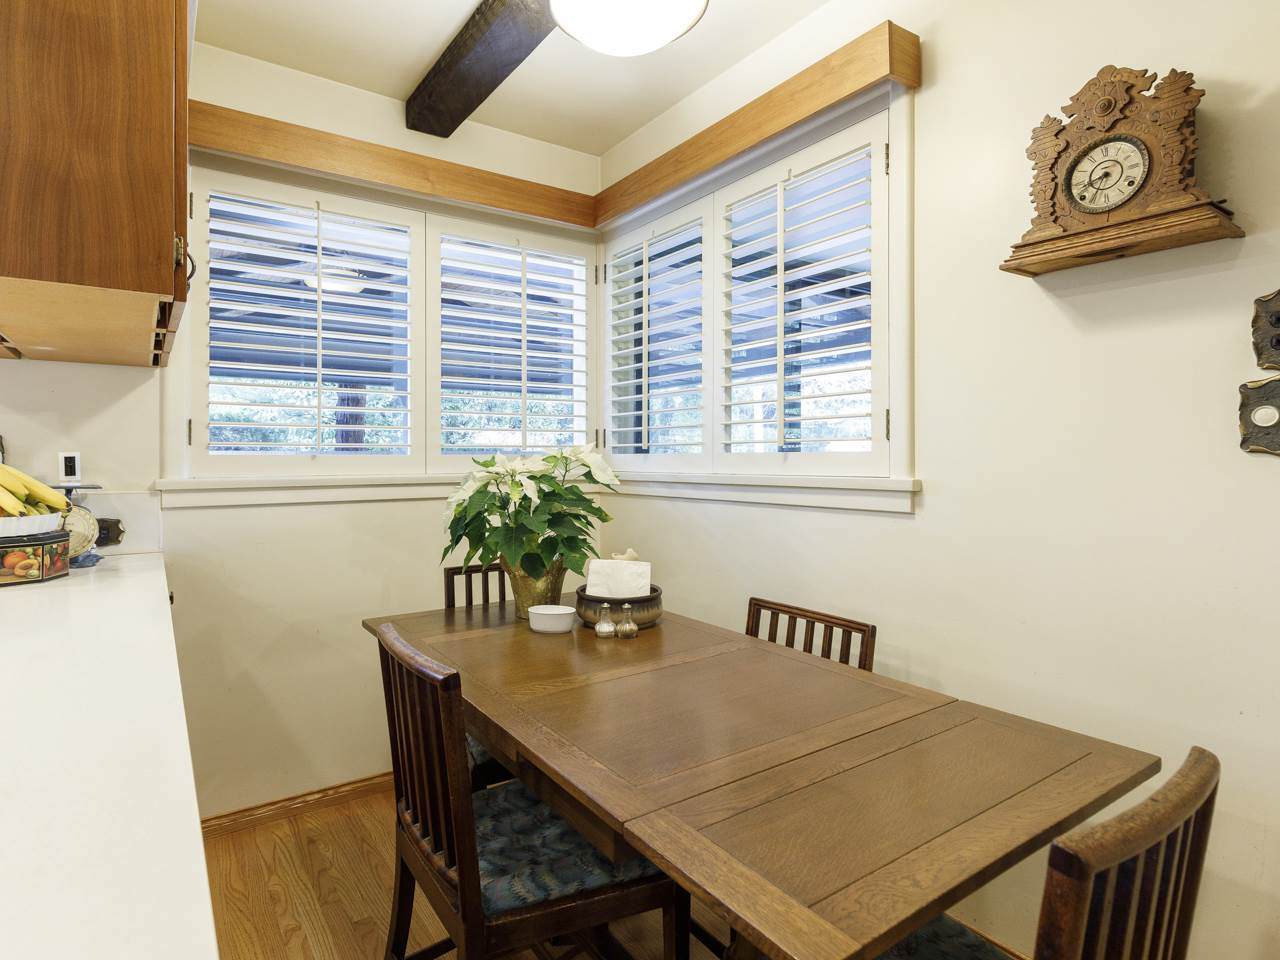 1308 W 54TH AVENUE - South Granville House/Single Family for sale, 4 Bedrooms (R2528346) - #28